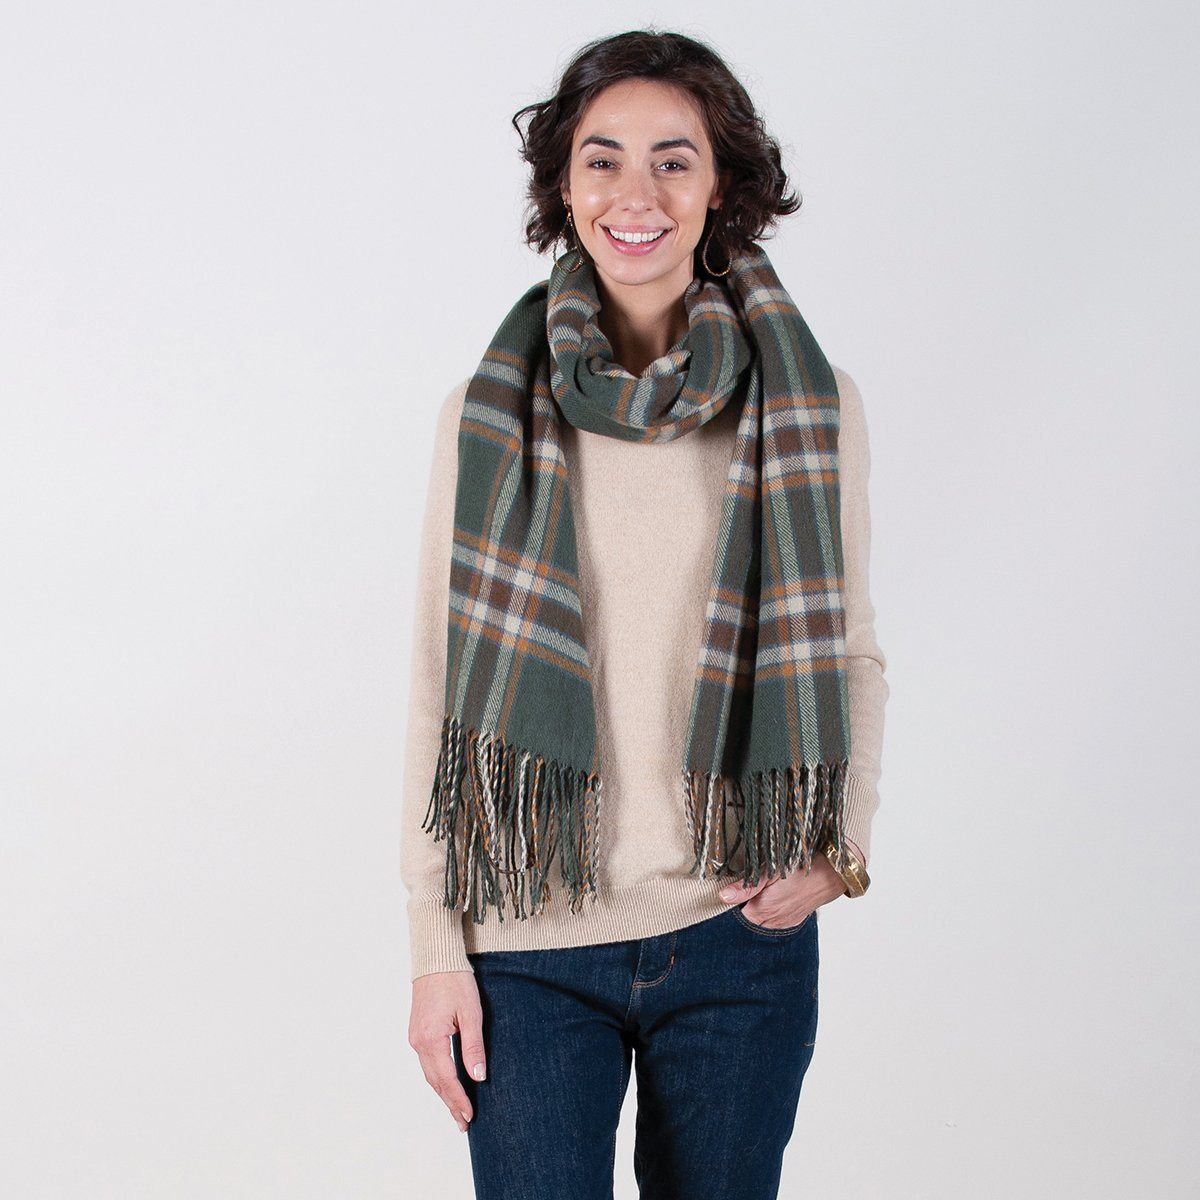 Loden Green/Brown Plaid Wrap Blanket Scarf - rockflowerpaper LLC